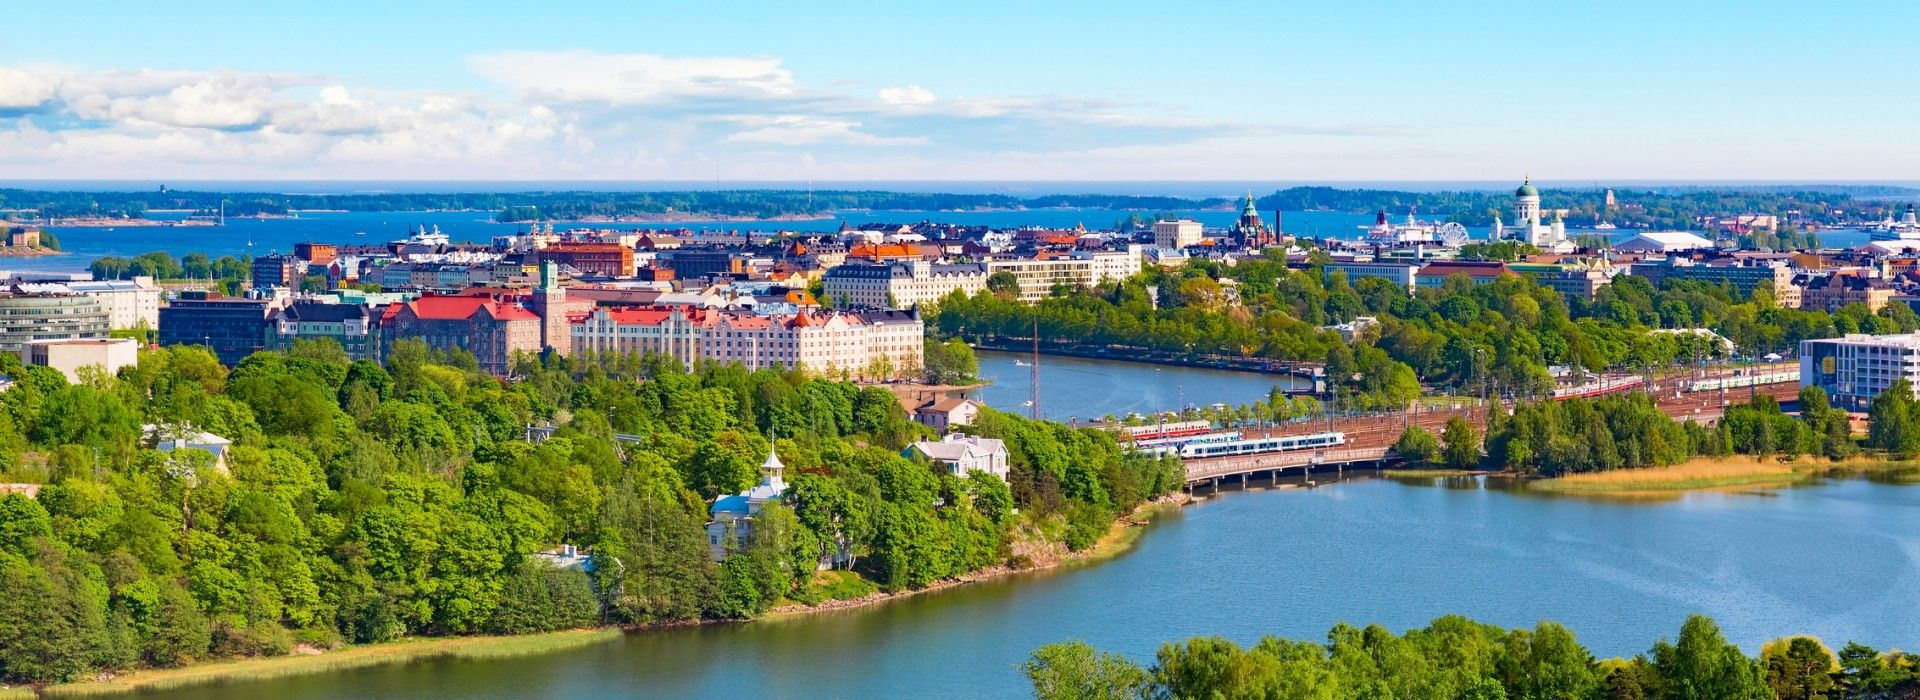 Special interests and hobbies Tours in Finland